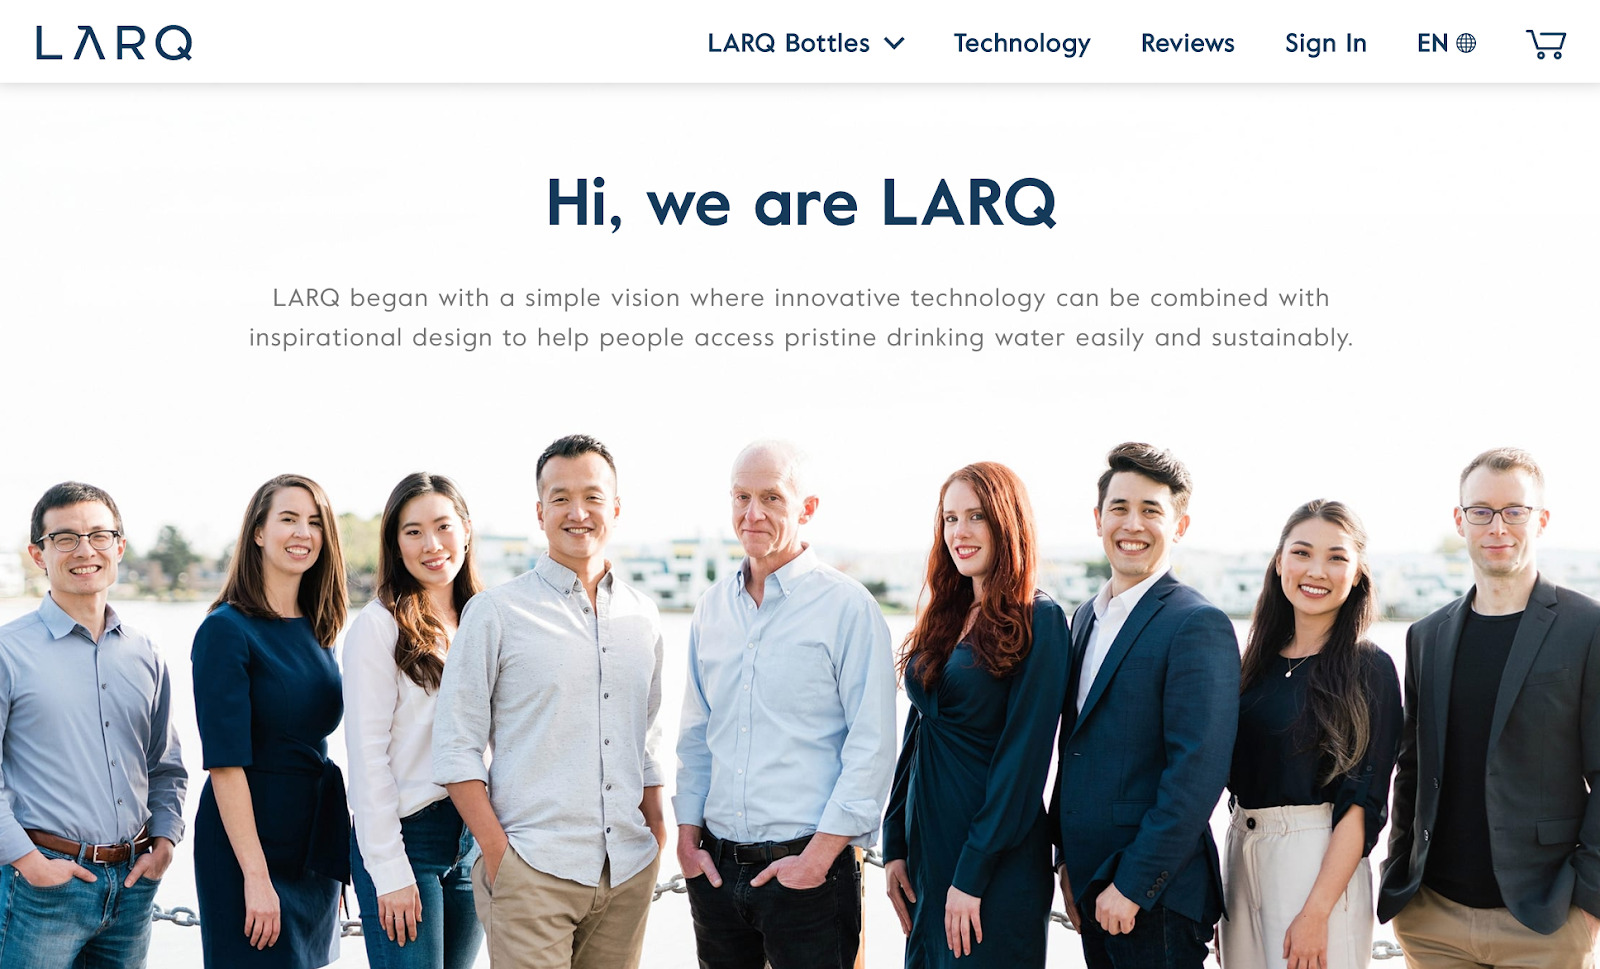 Larq About us page